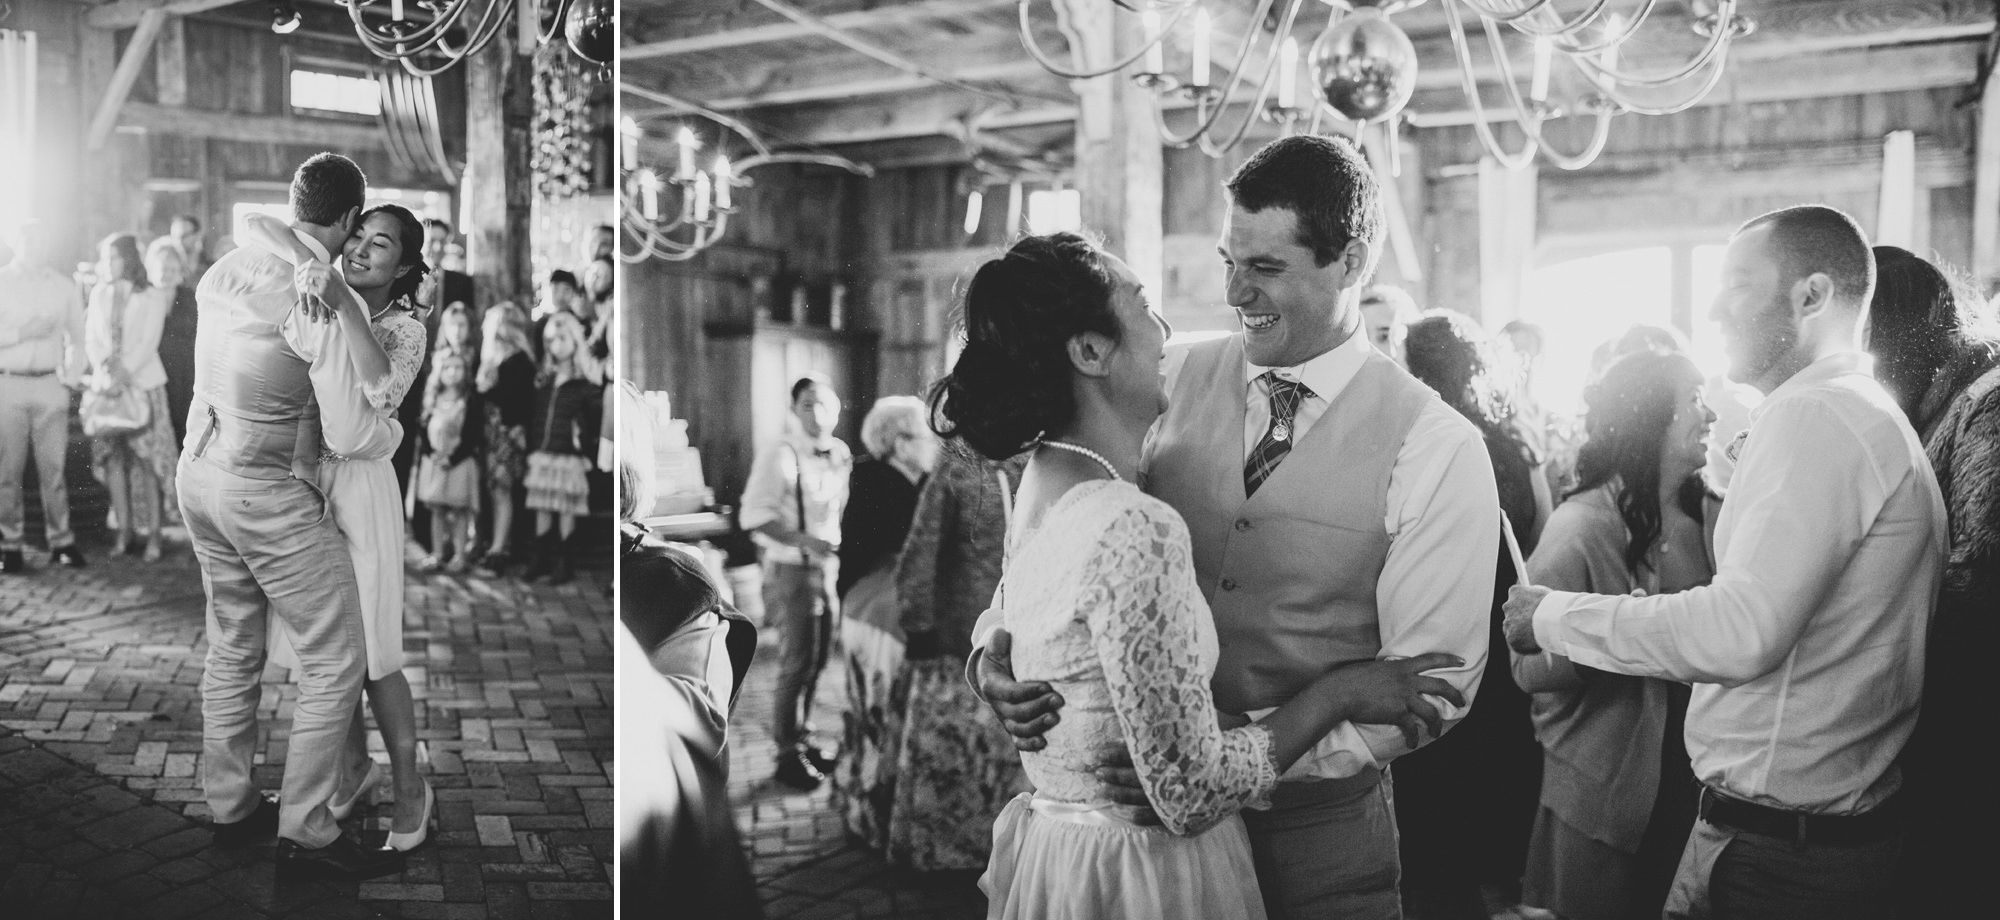 Wedding in Spring Ranch ©Anne-Claire Brun 0048